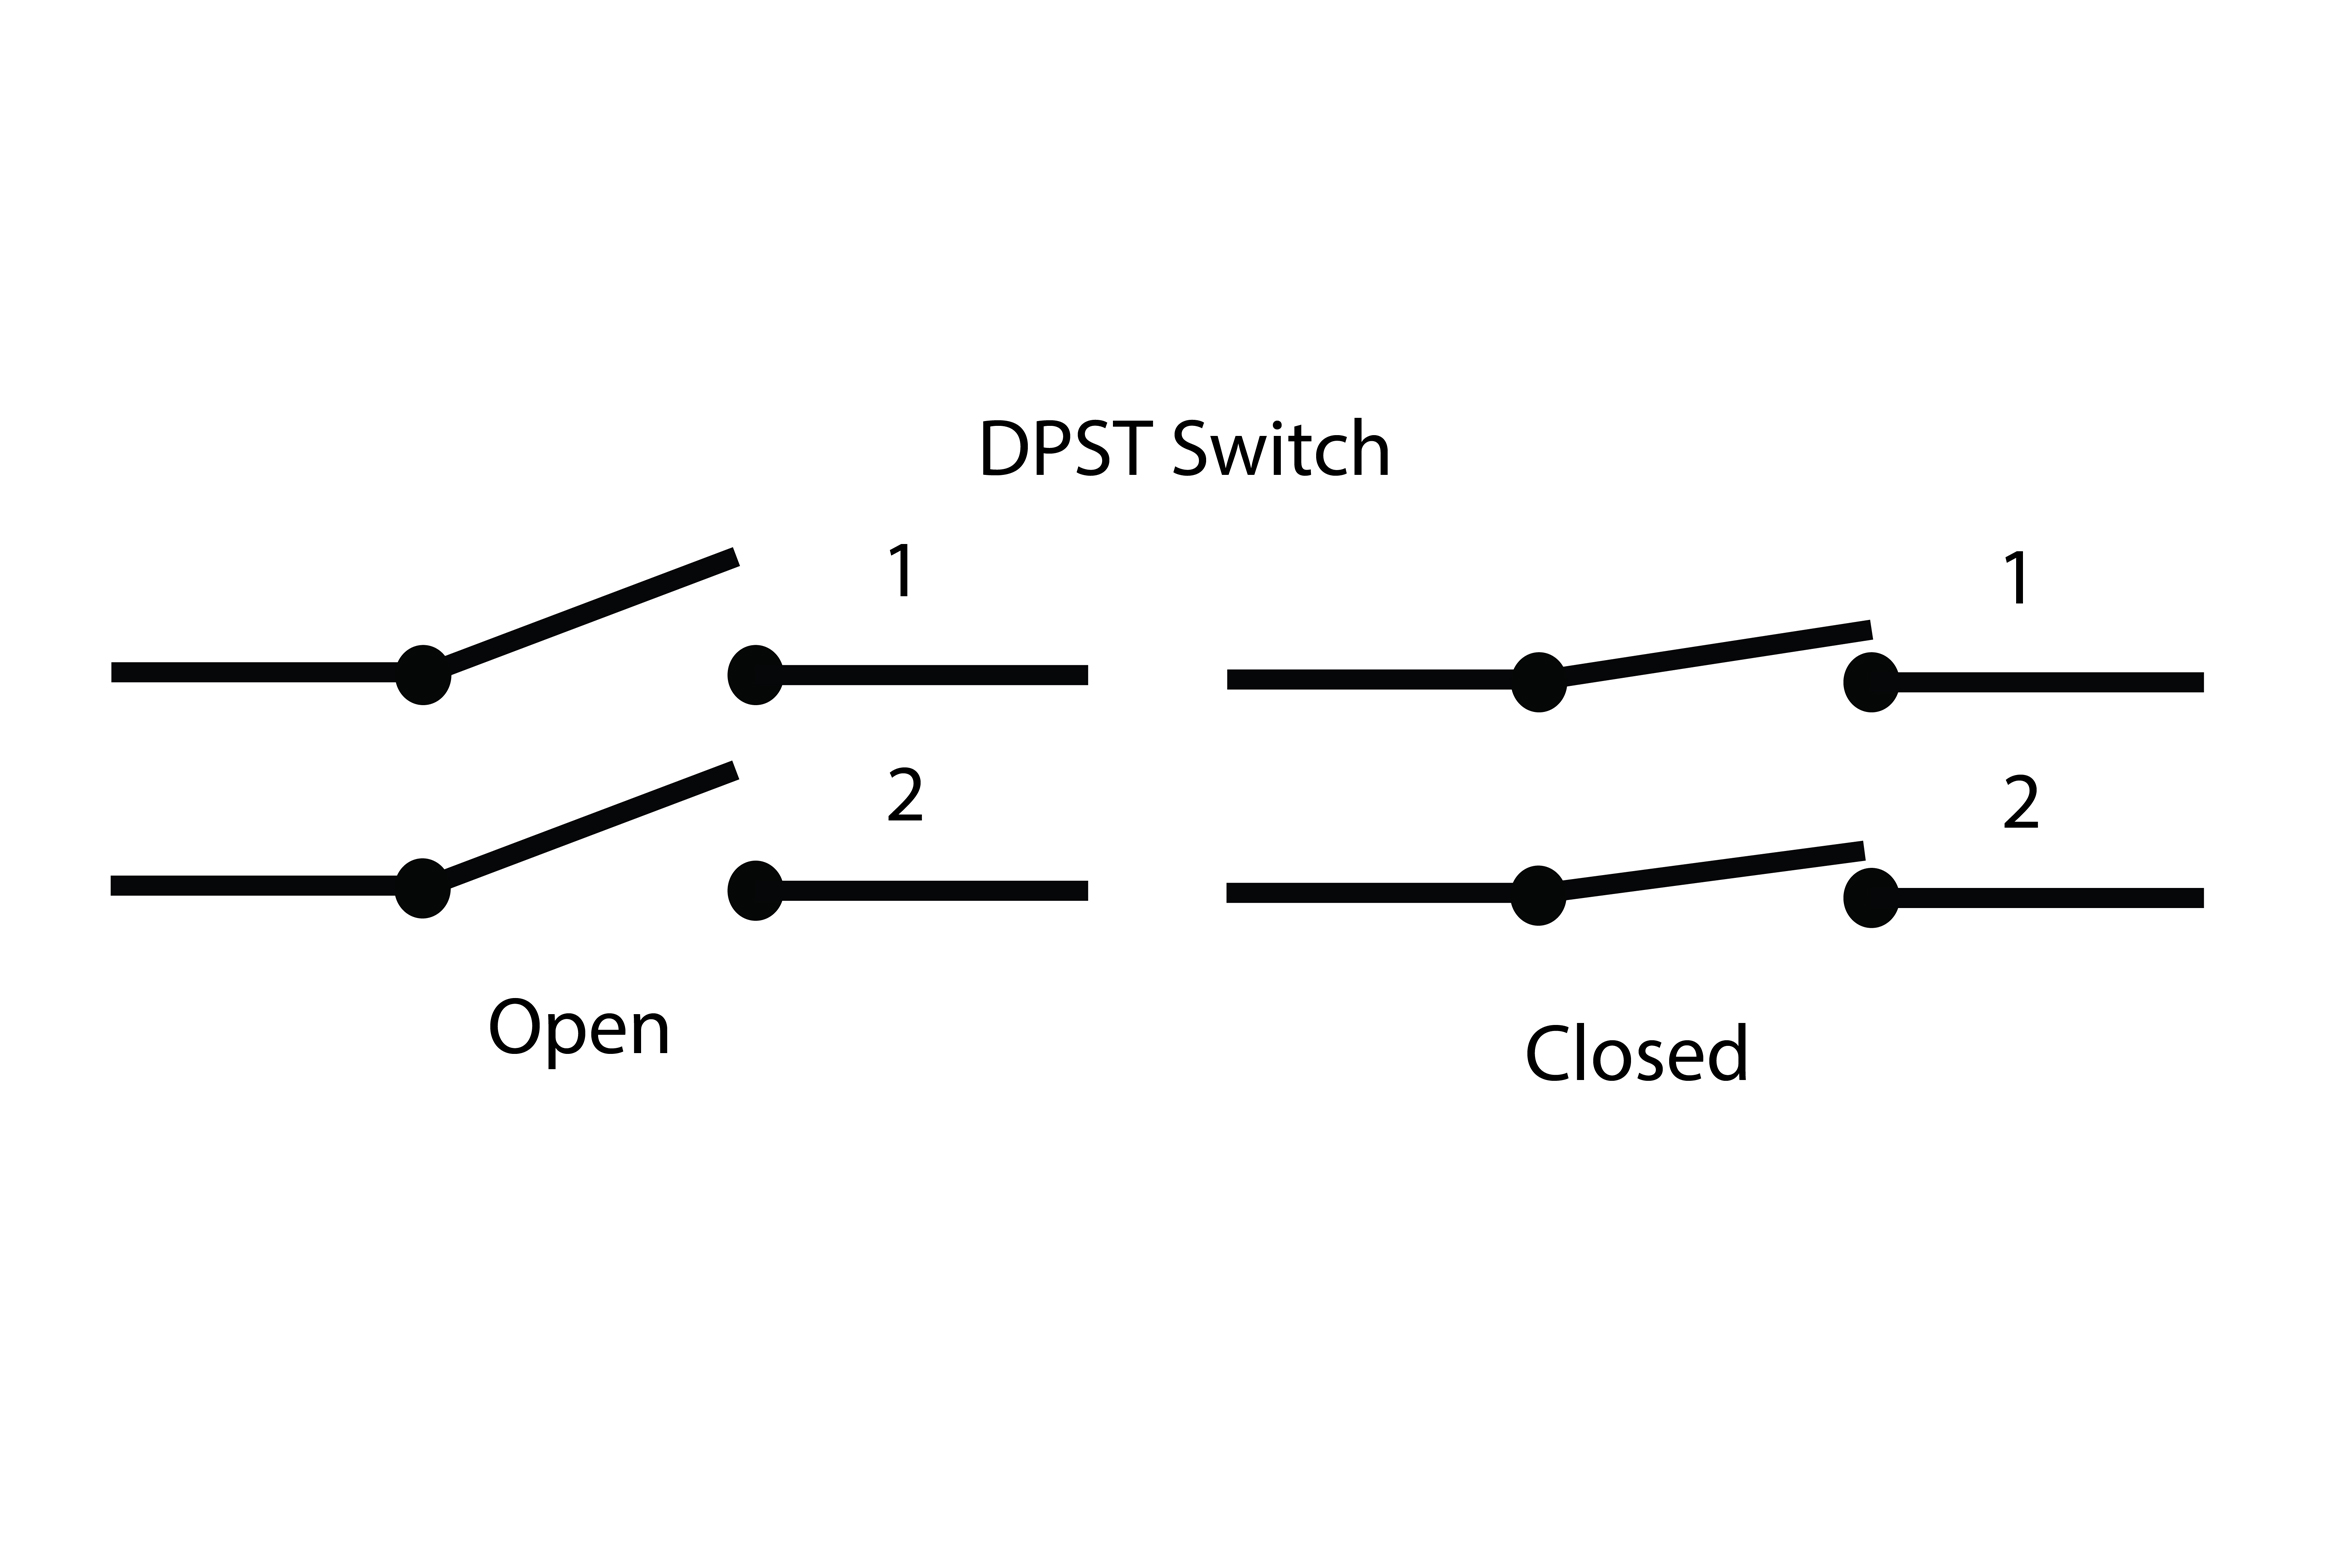 Introducing The Soft Switch Single Pole Double Throw Momentary Wiring Diagram